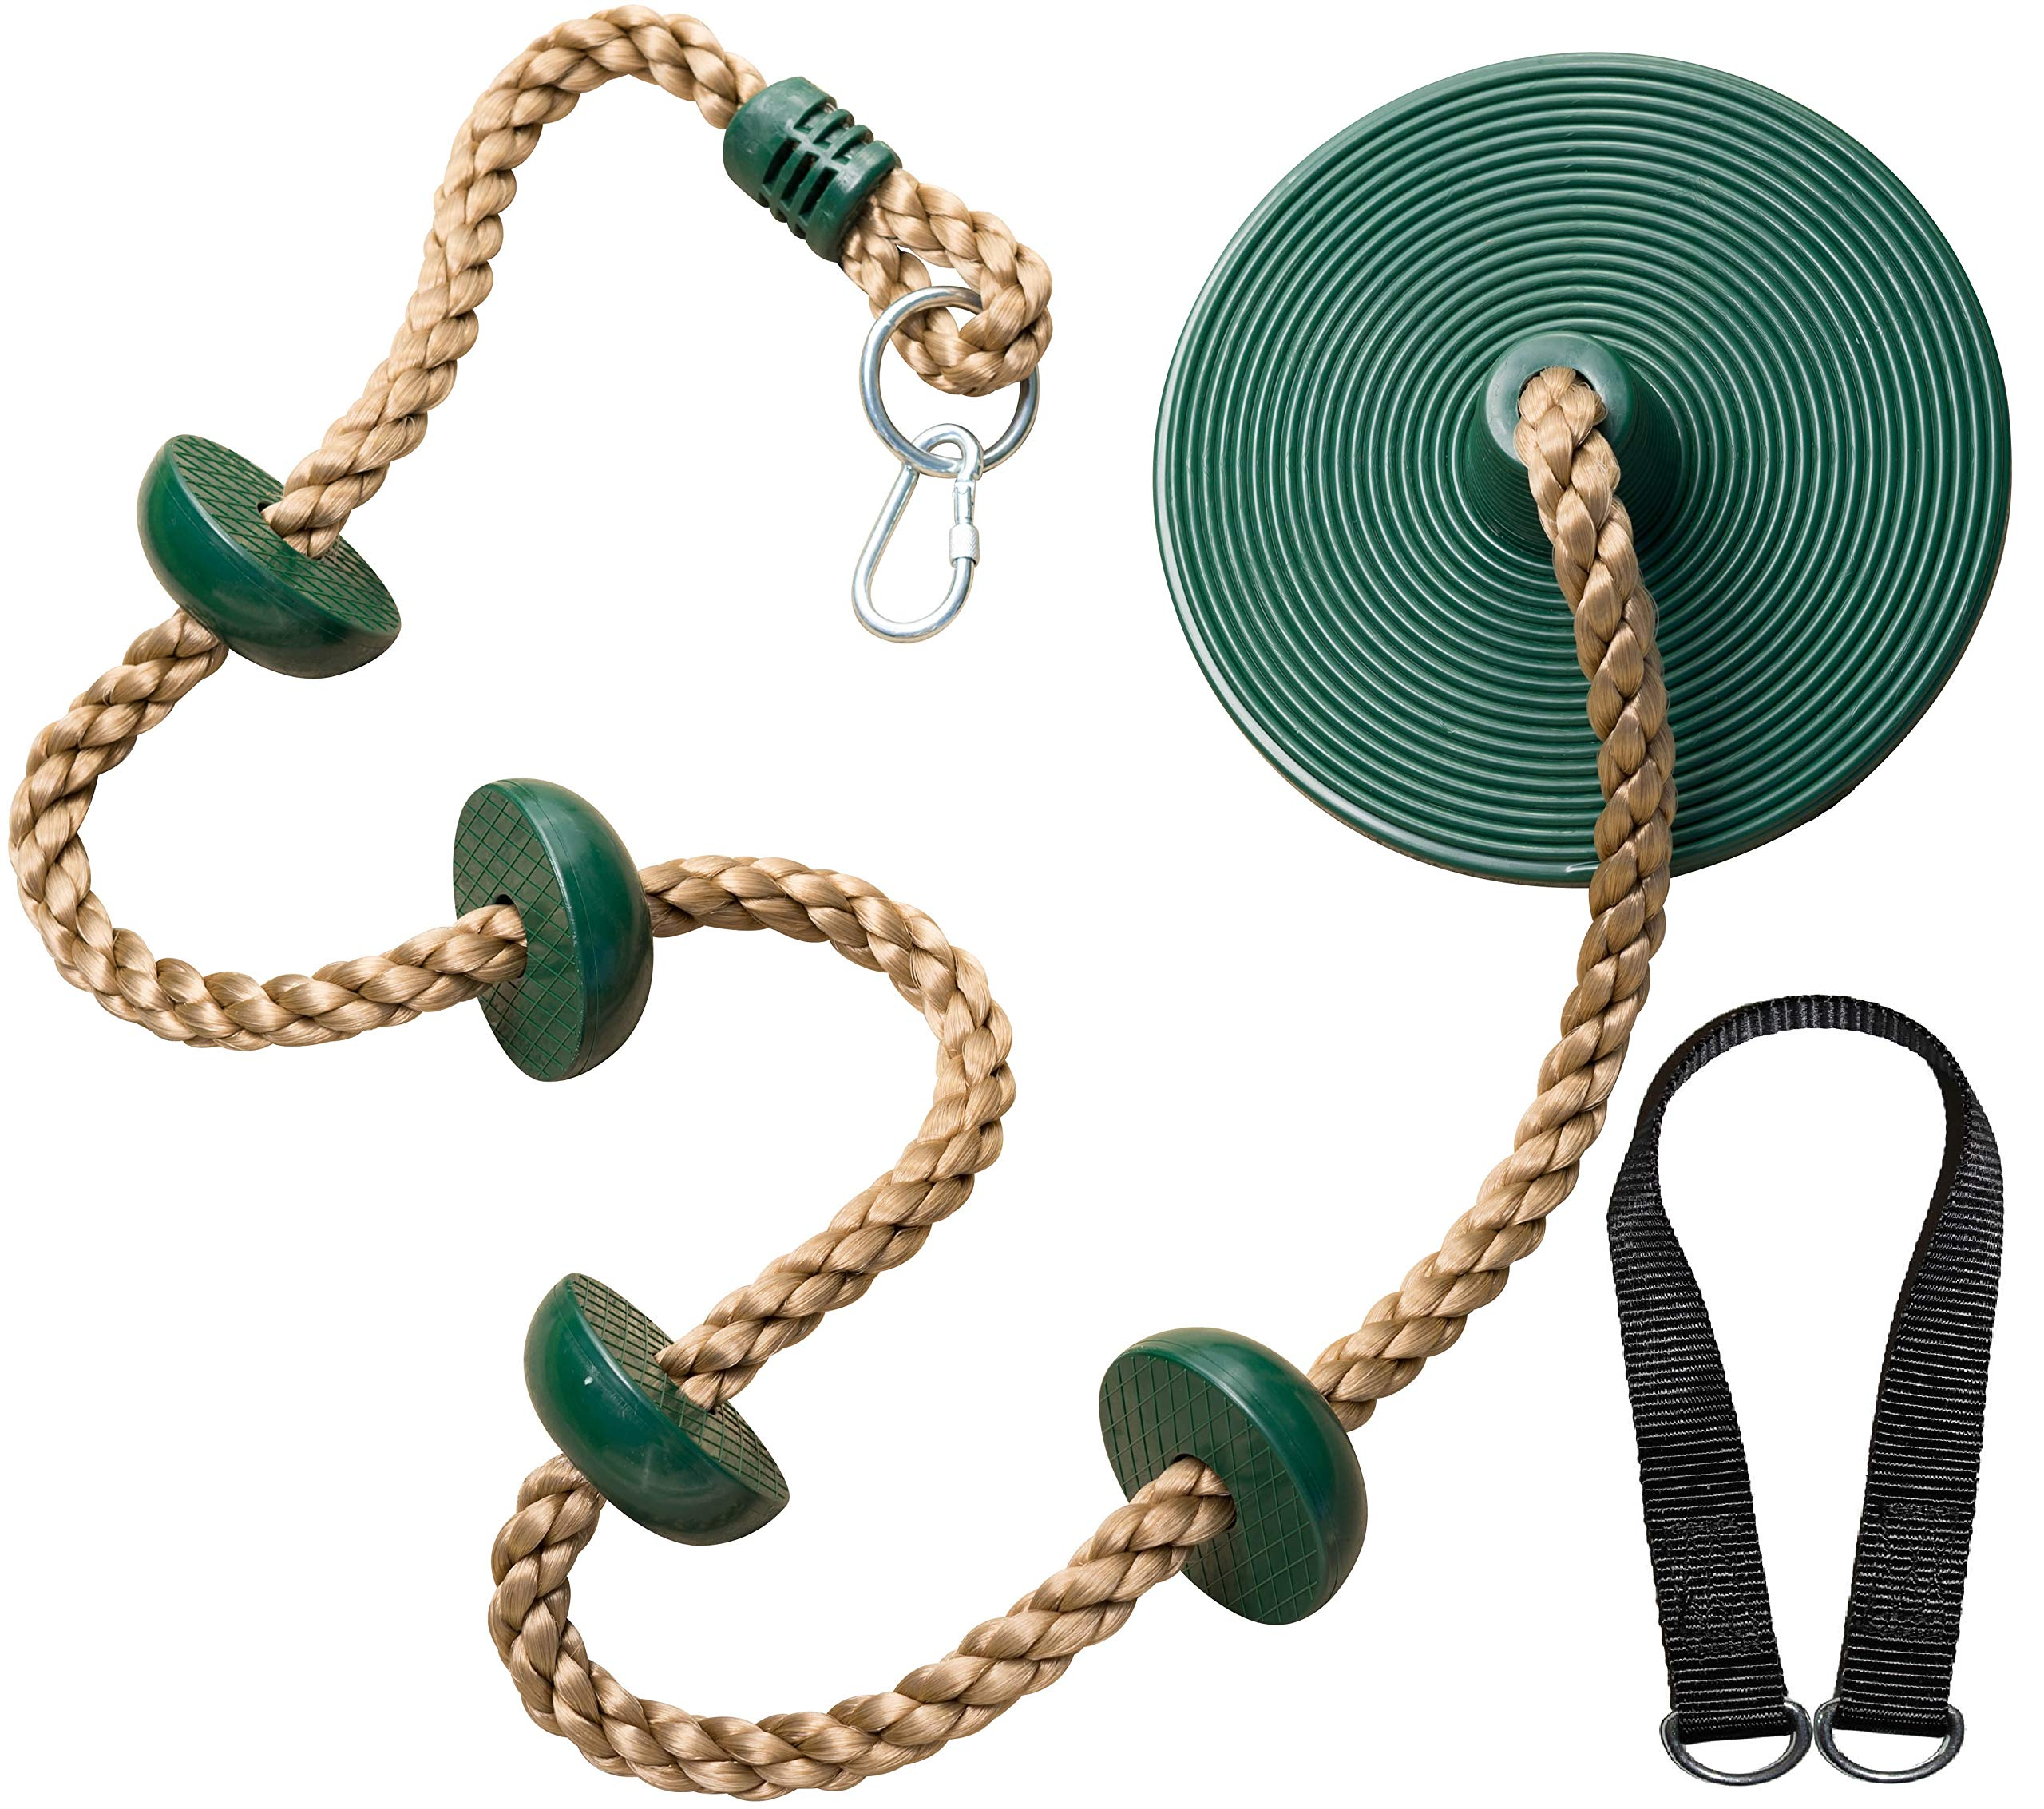 Jungle Gym Kingdom Climbing Rope with Platforms and Disc Swing Seat Green - Playground Accessories by Jungle Gym Kingdom